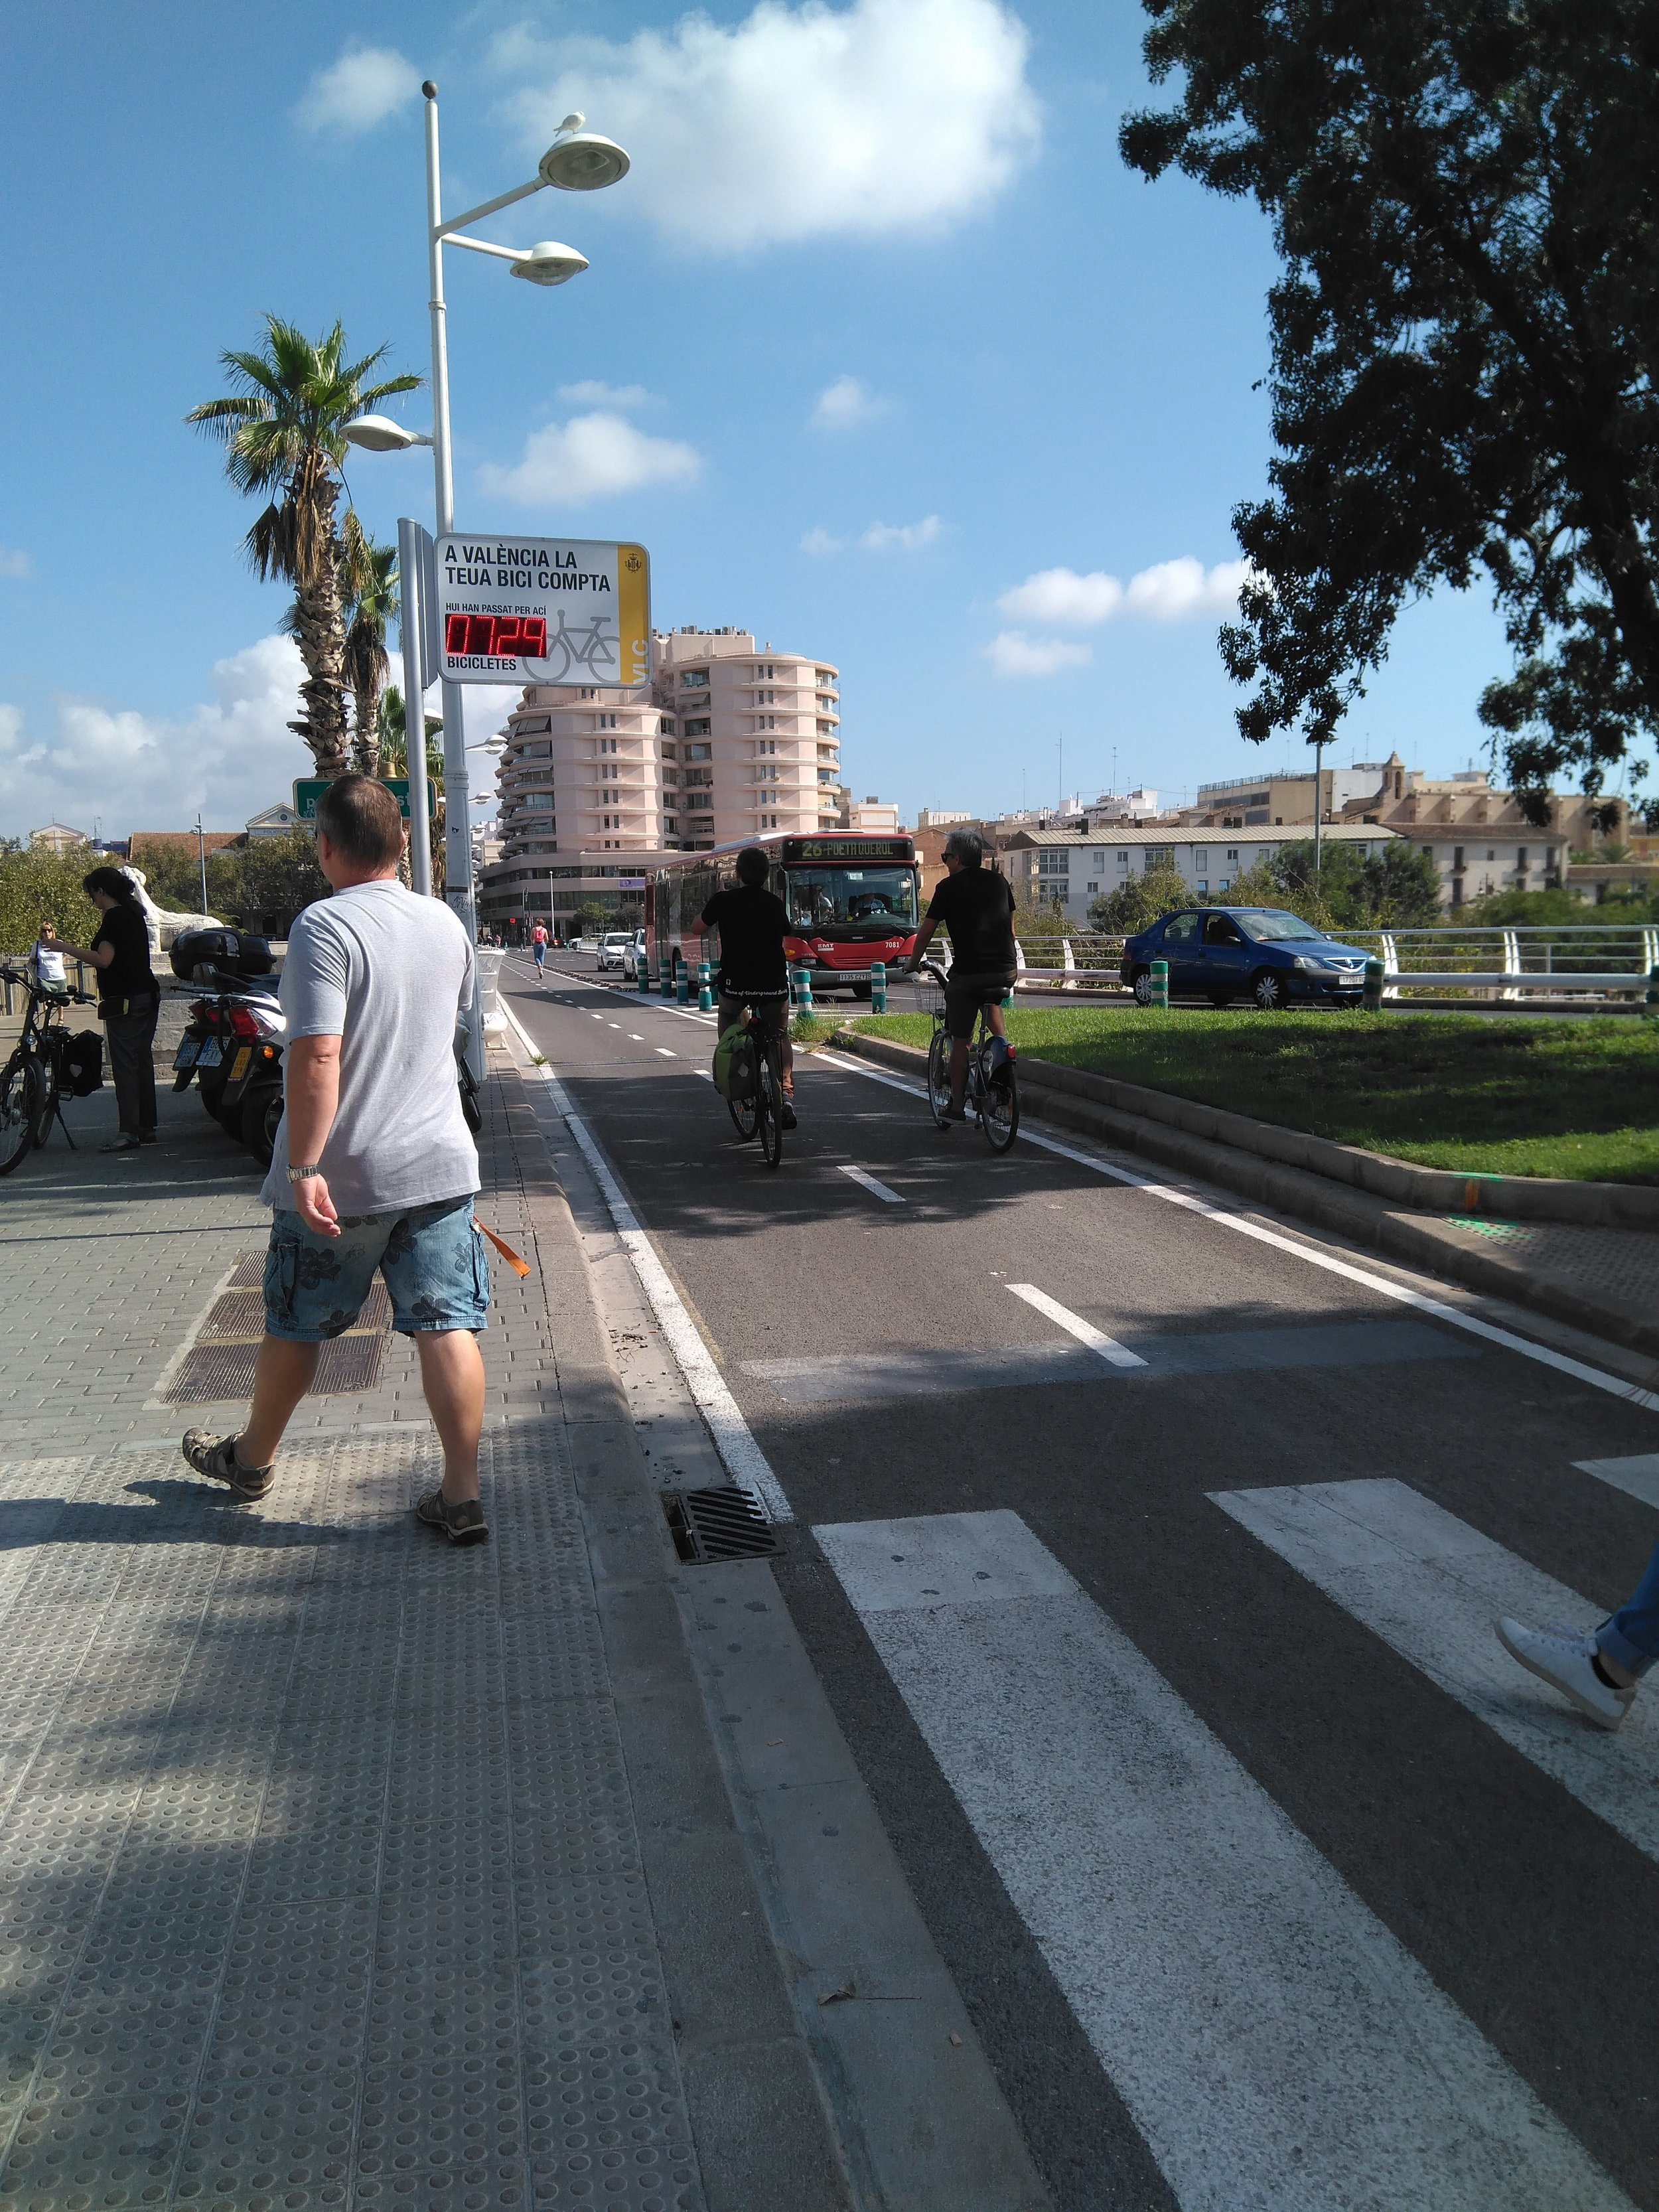 More bicycle counters and infrastructure.